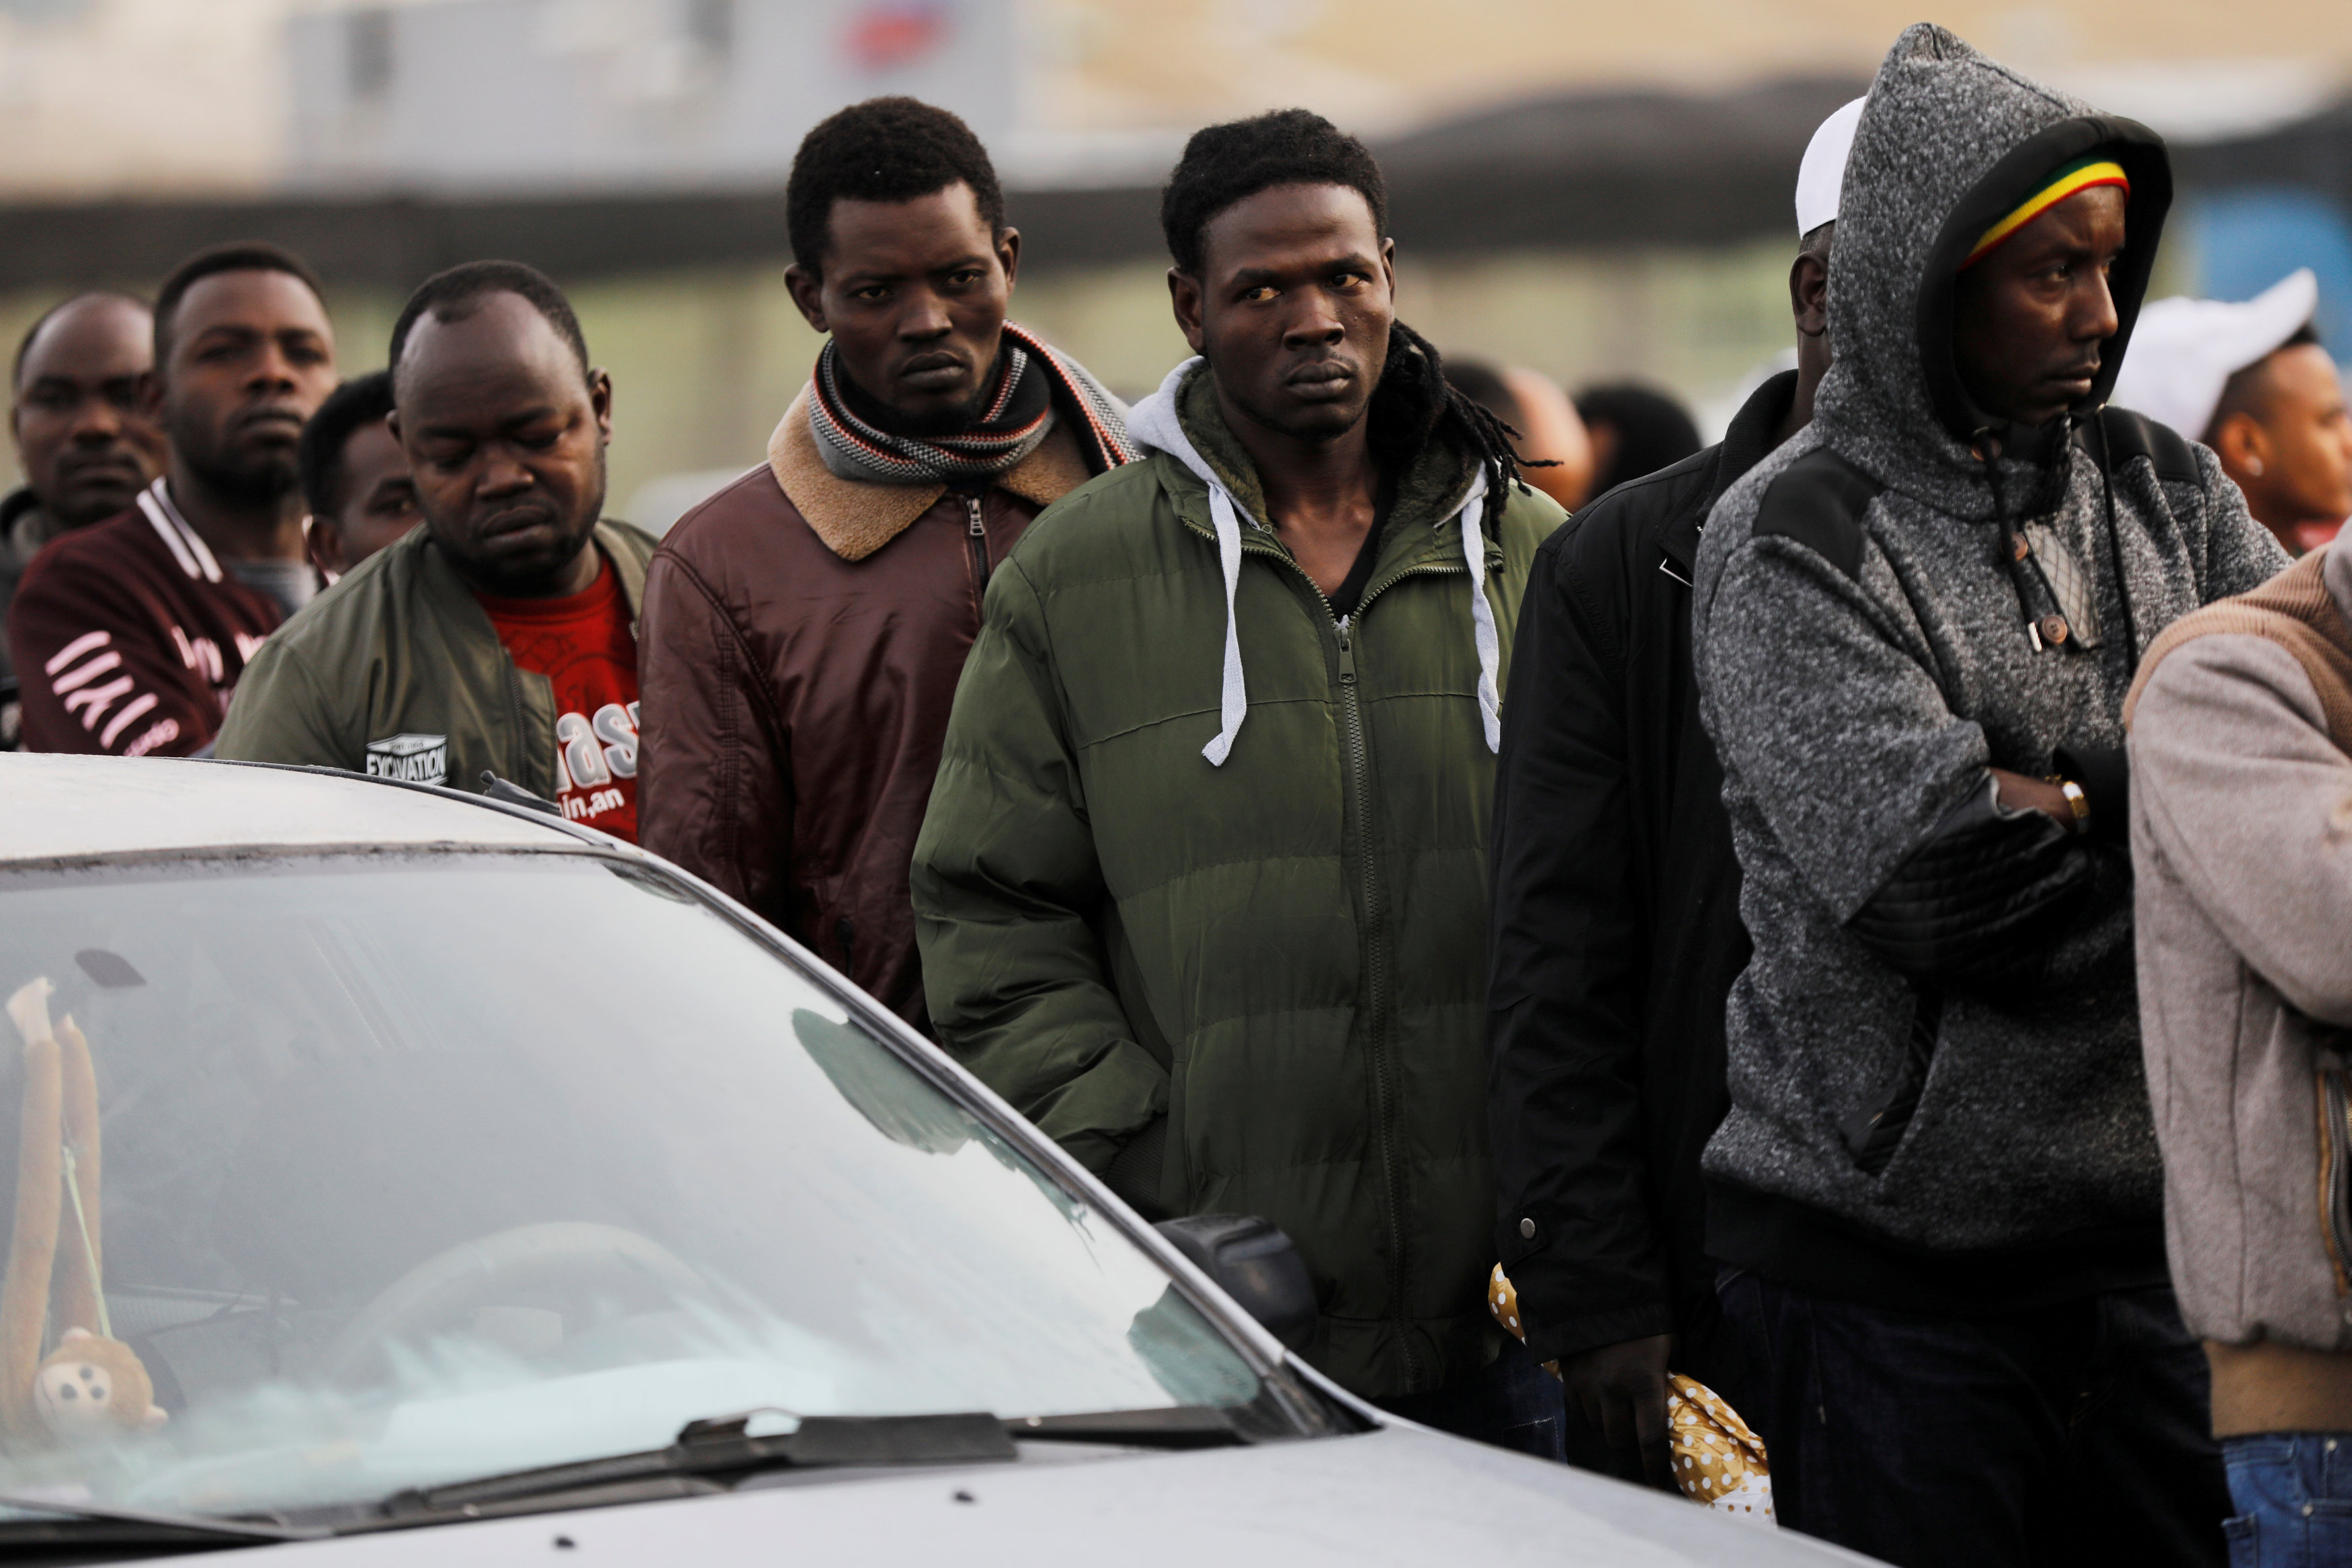 Israel scraps African migrant relocation deal with UN